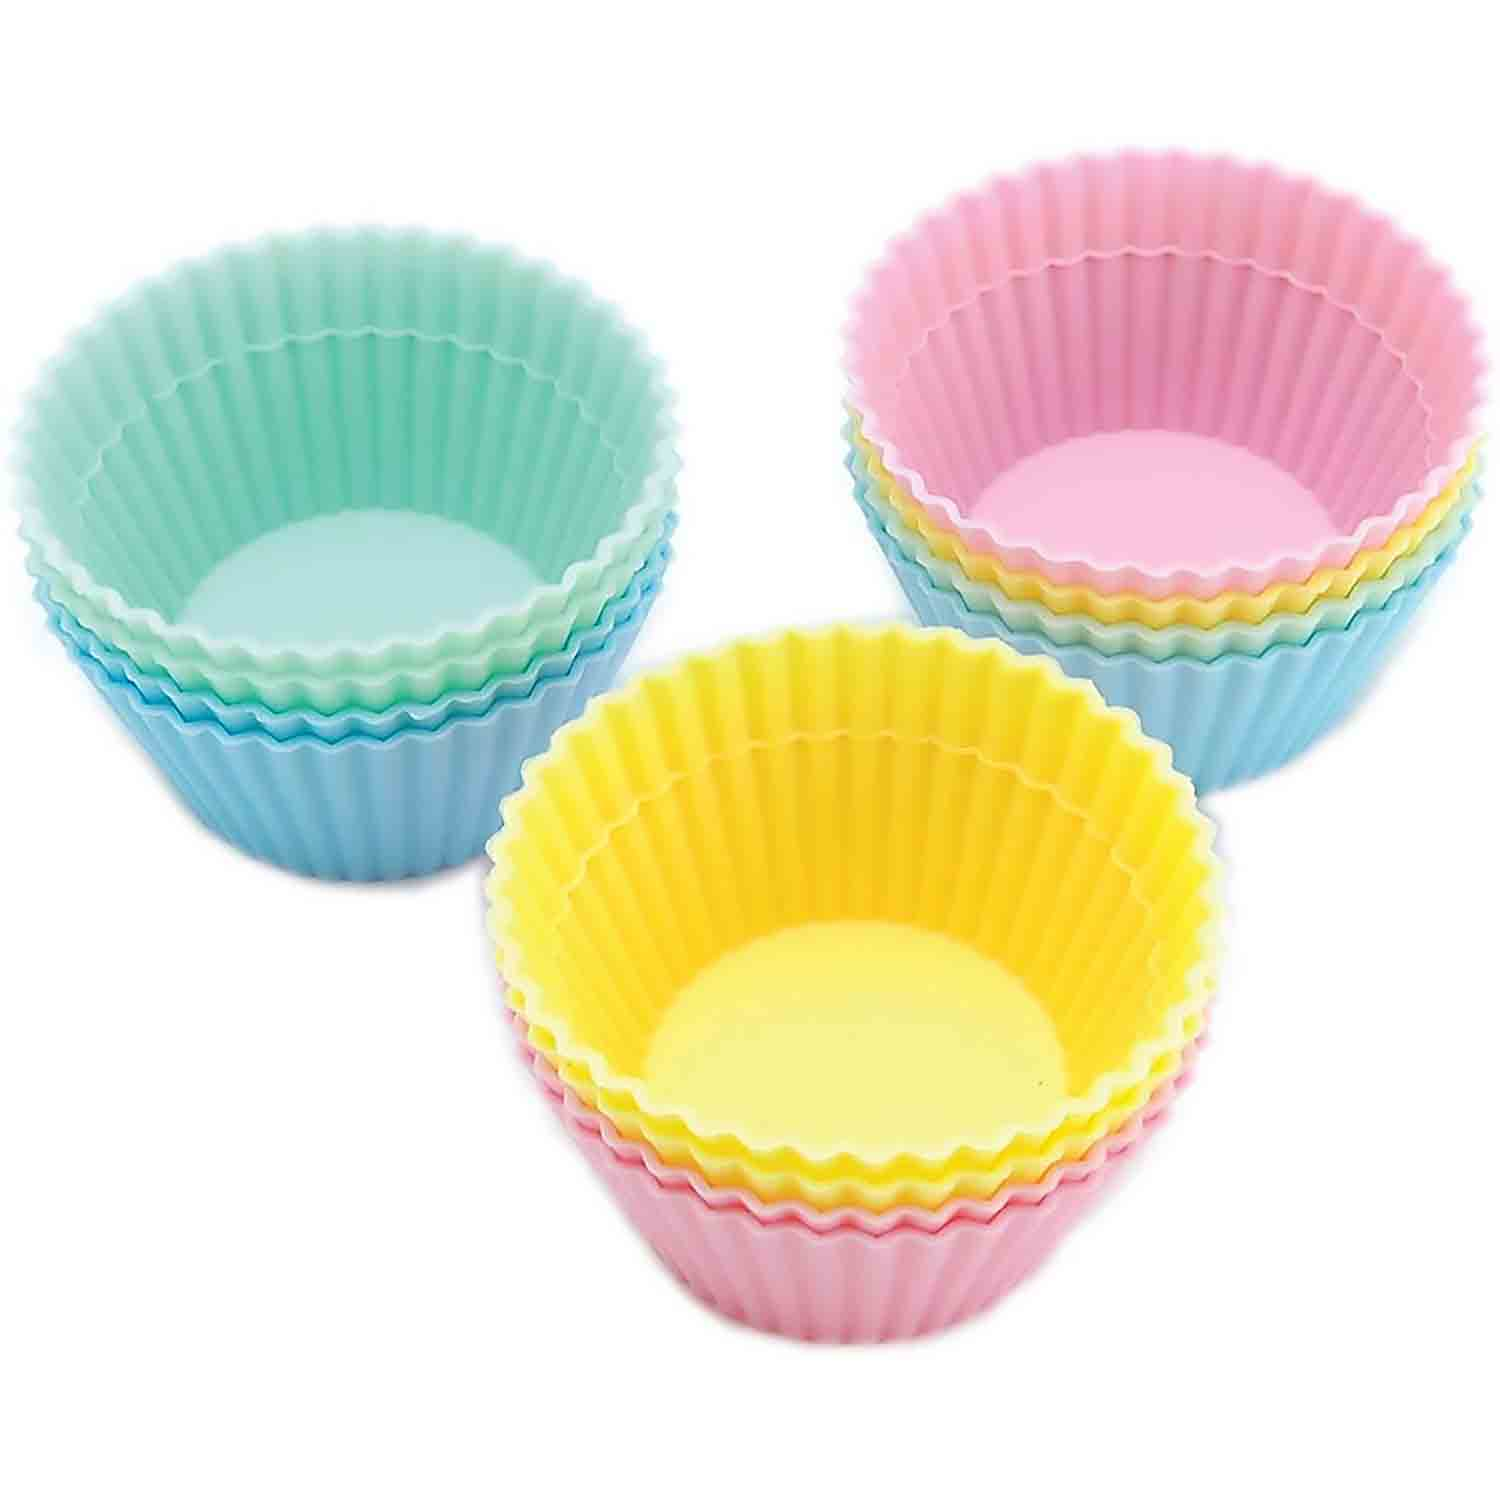 Pastel Silicone Baking Cups